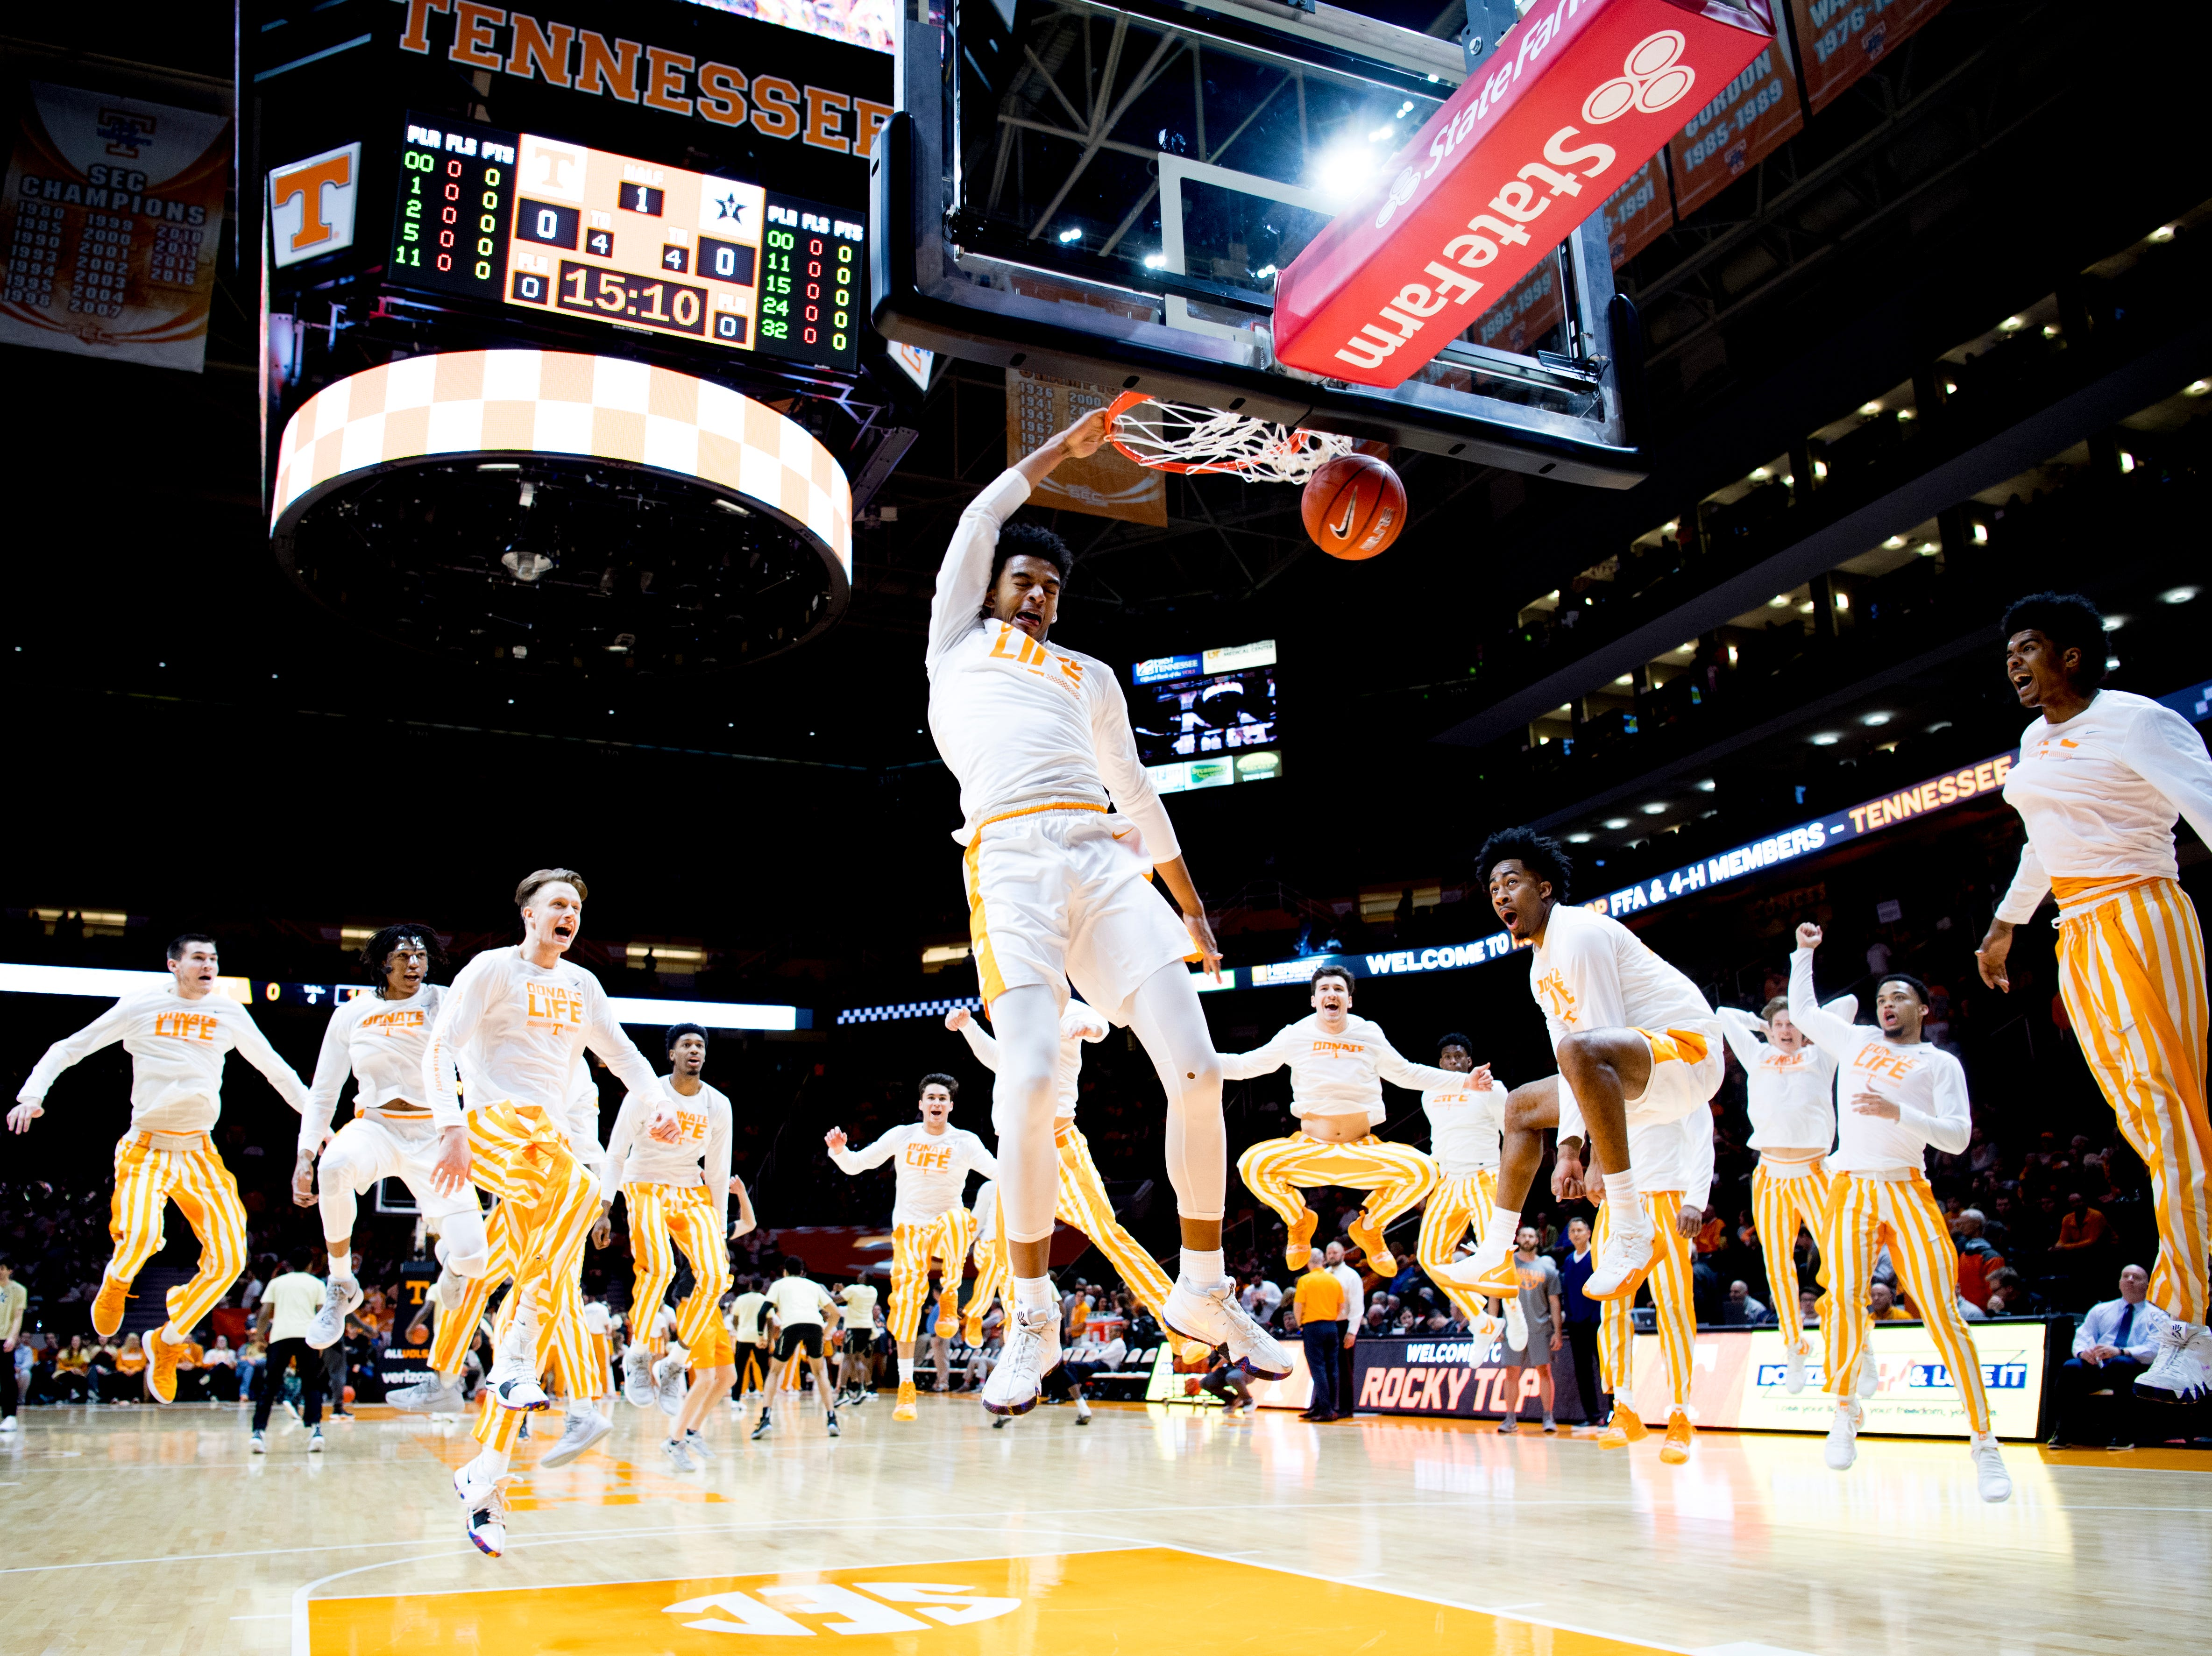 Tennessee guard Jalen Johnson (13) dunks during warm ups before a game between Tennessee and Vanderbilt at Thompson-Boling Arena in Knoxville, Tennessee on Tuesday, February 19, 2019.